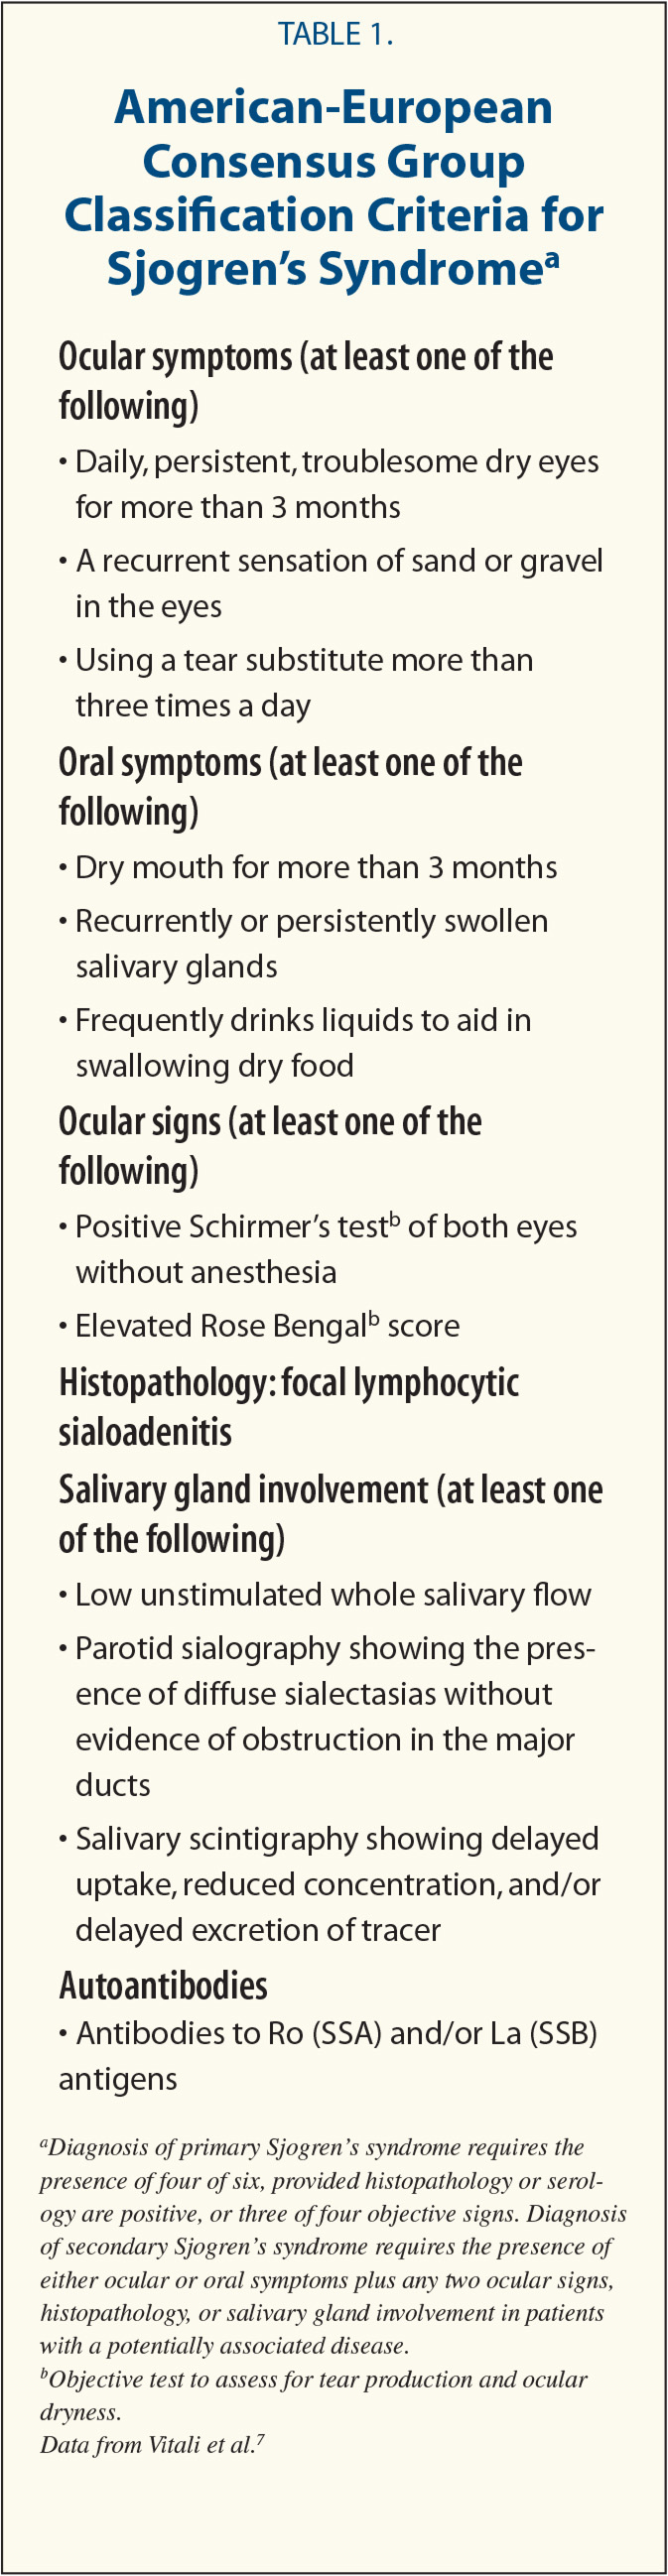 American-European Consensus Group Classification Criteria for Sjogren's Syndromea